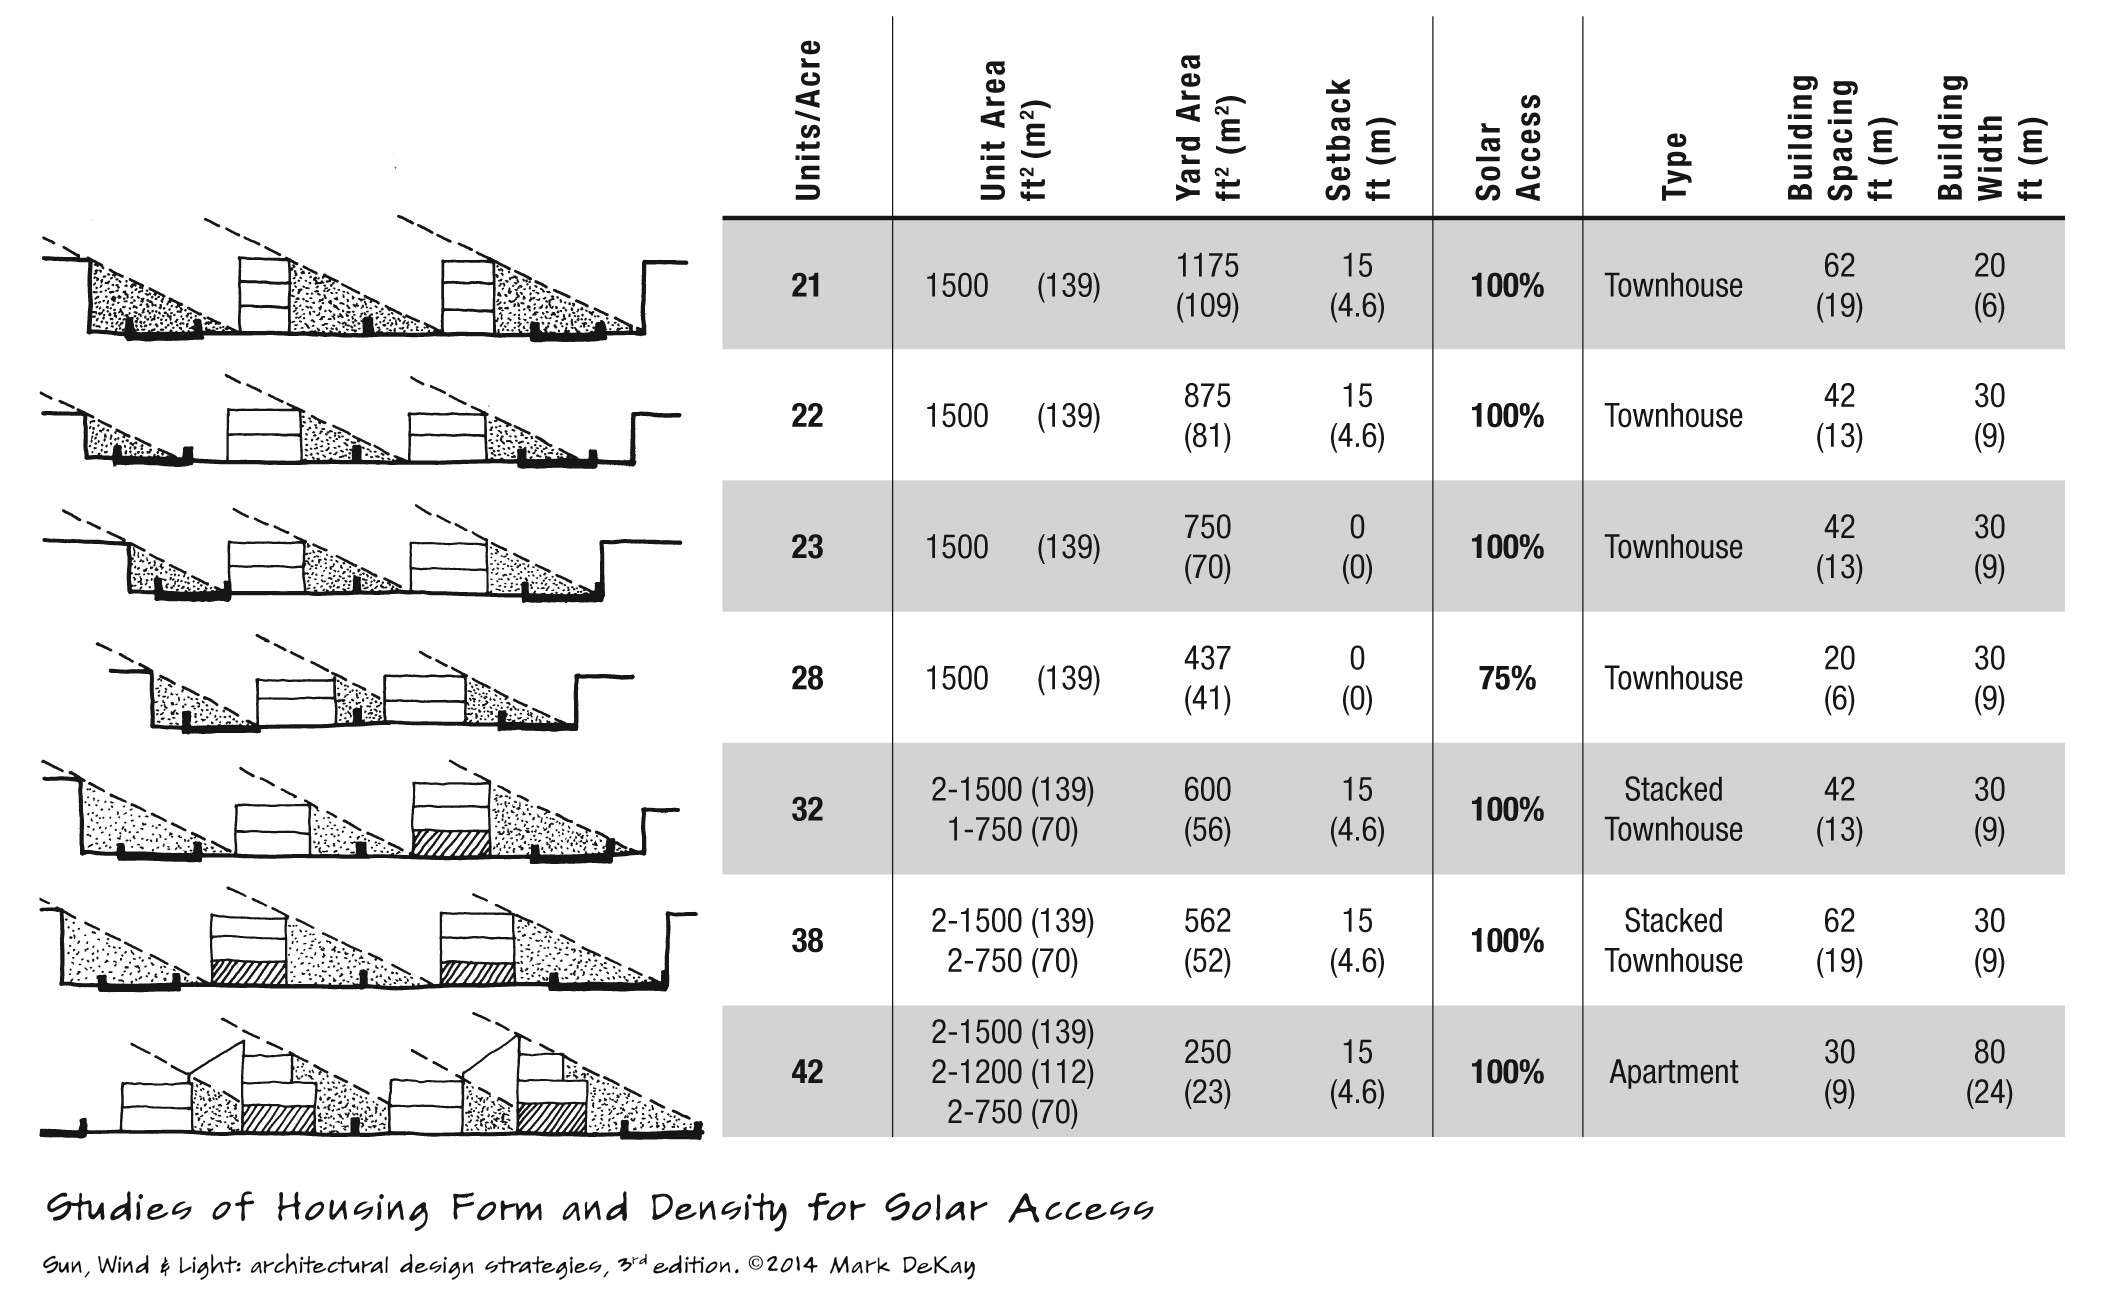 p135 Studies of Housing Form